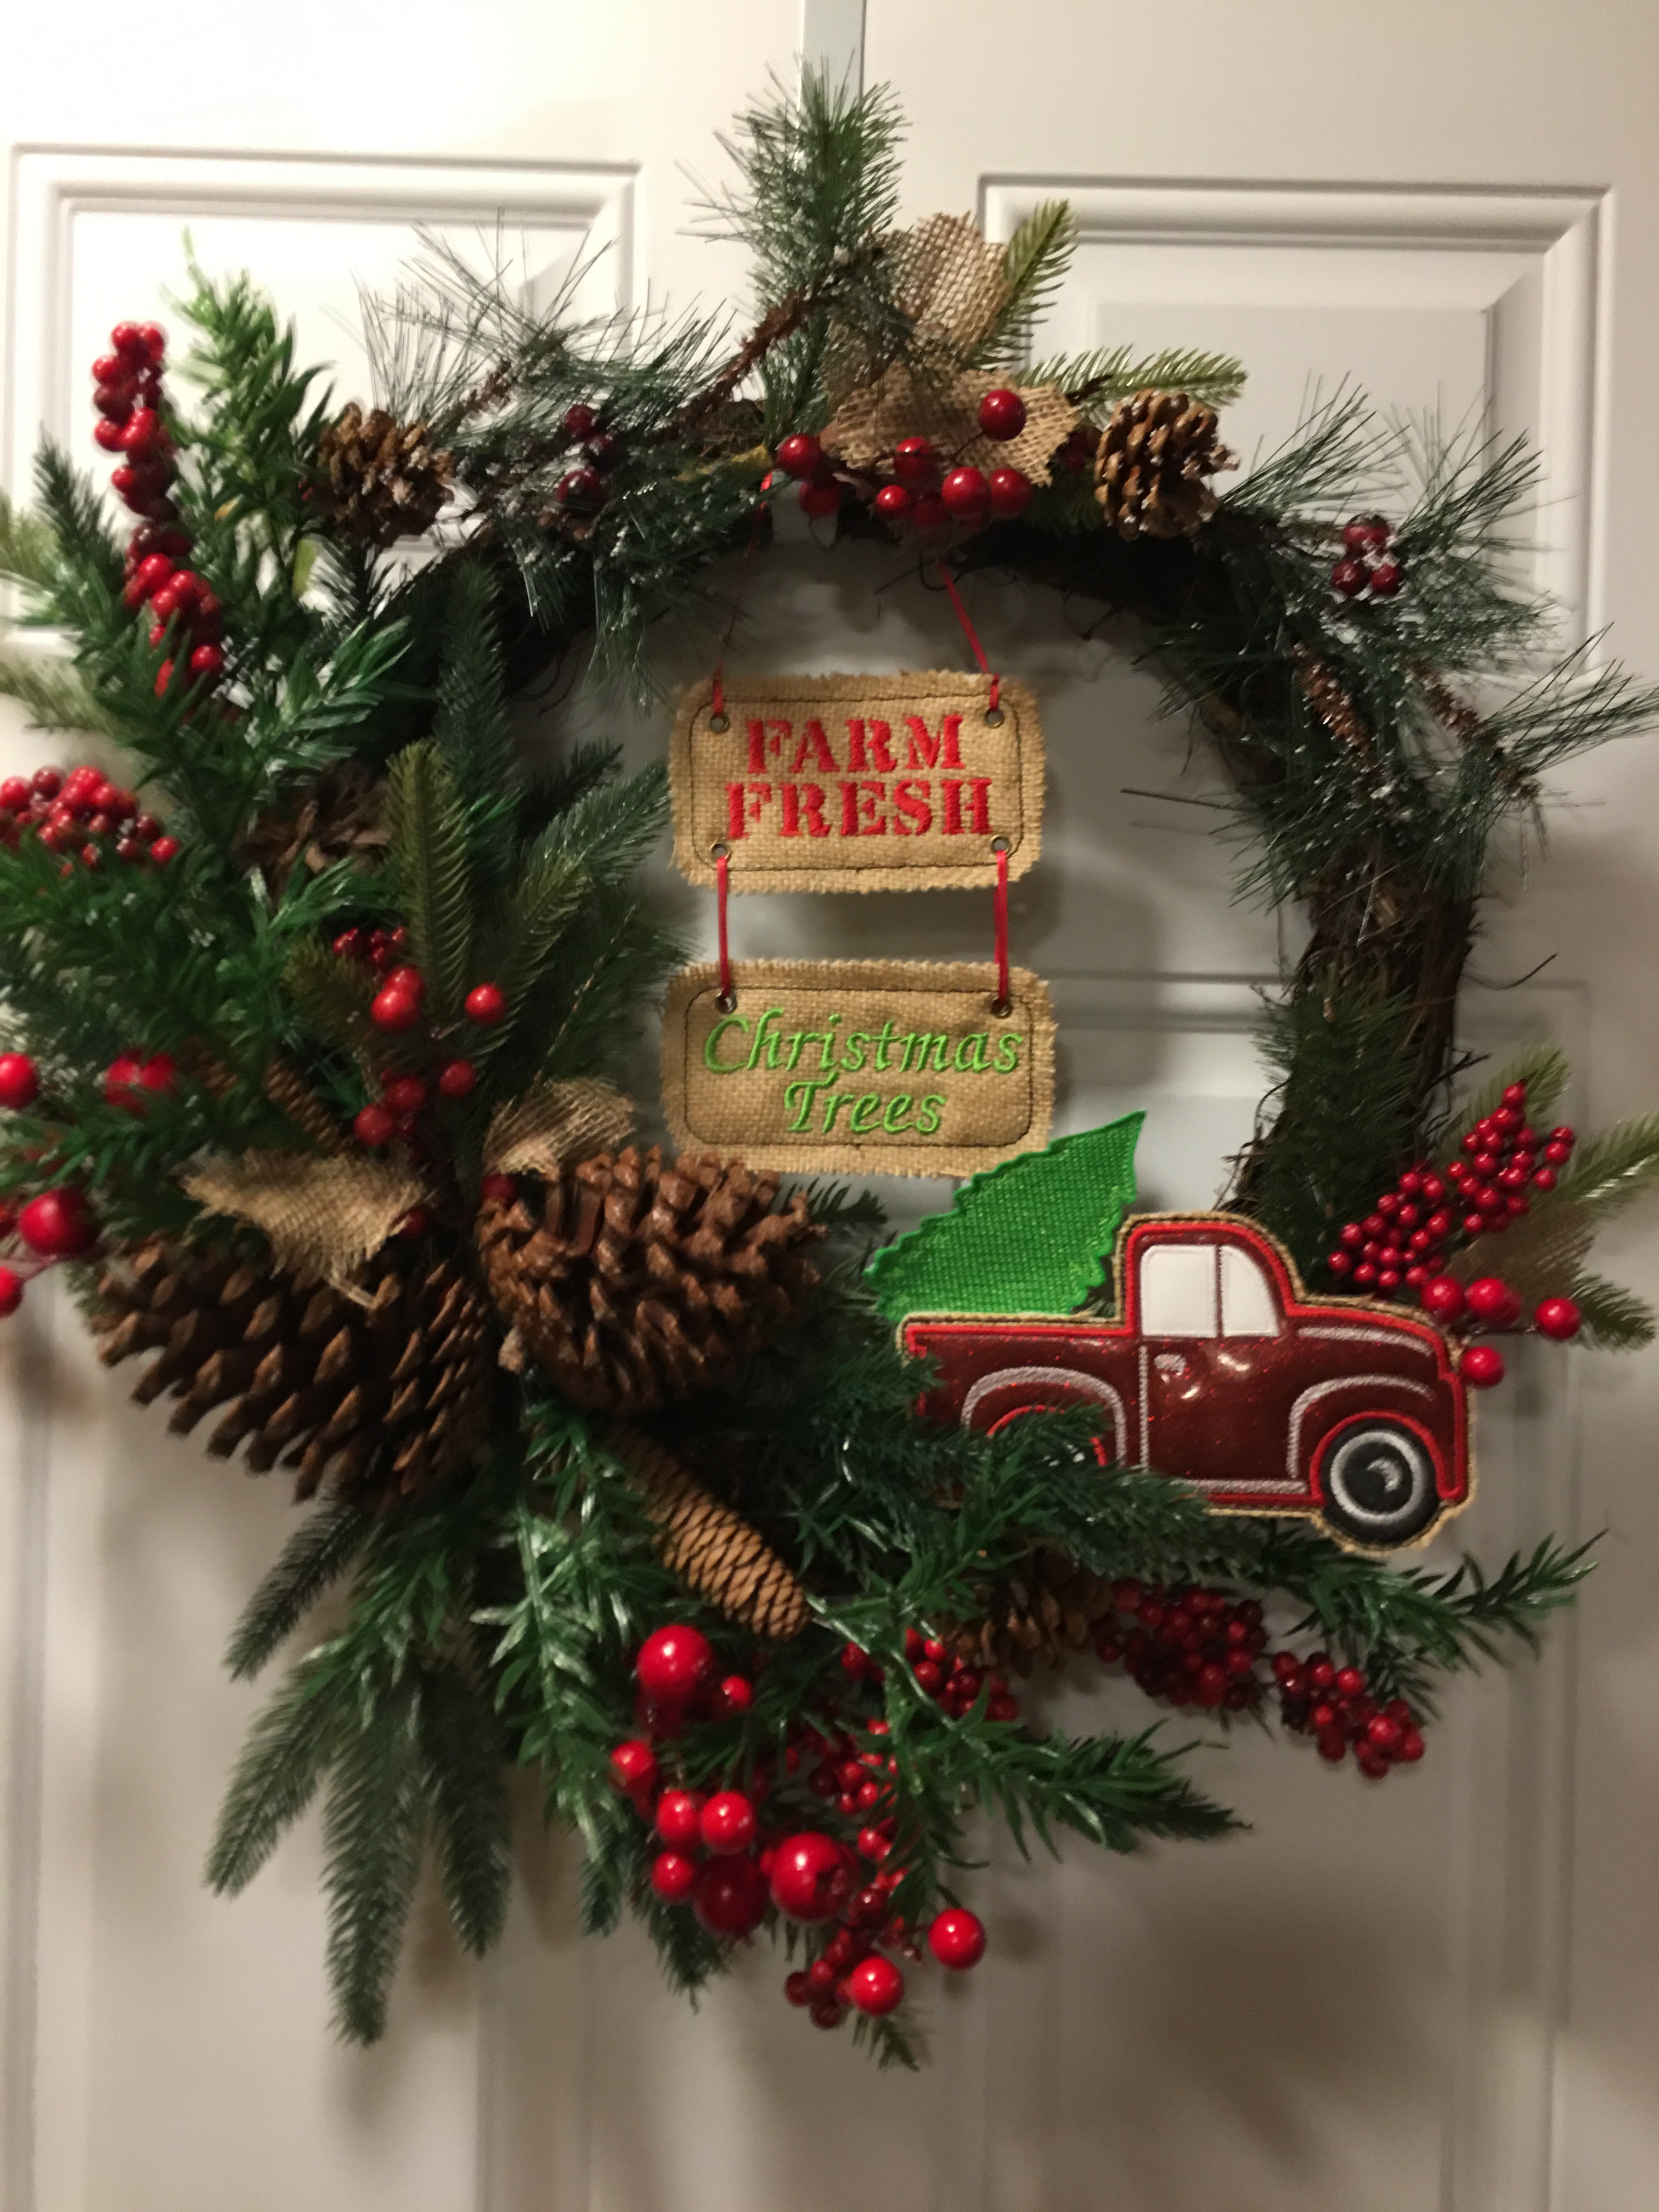 Vintage Truck Farm Fresh Christmas Trees Wreath Set 5 X 7 6 X 10 And 8 X 12 Included Digital Embroidery Design Nana S Handmade Baby Boutique